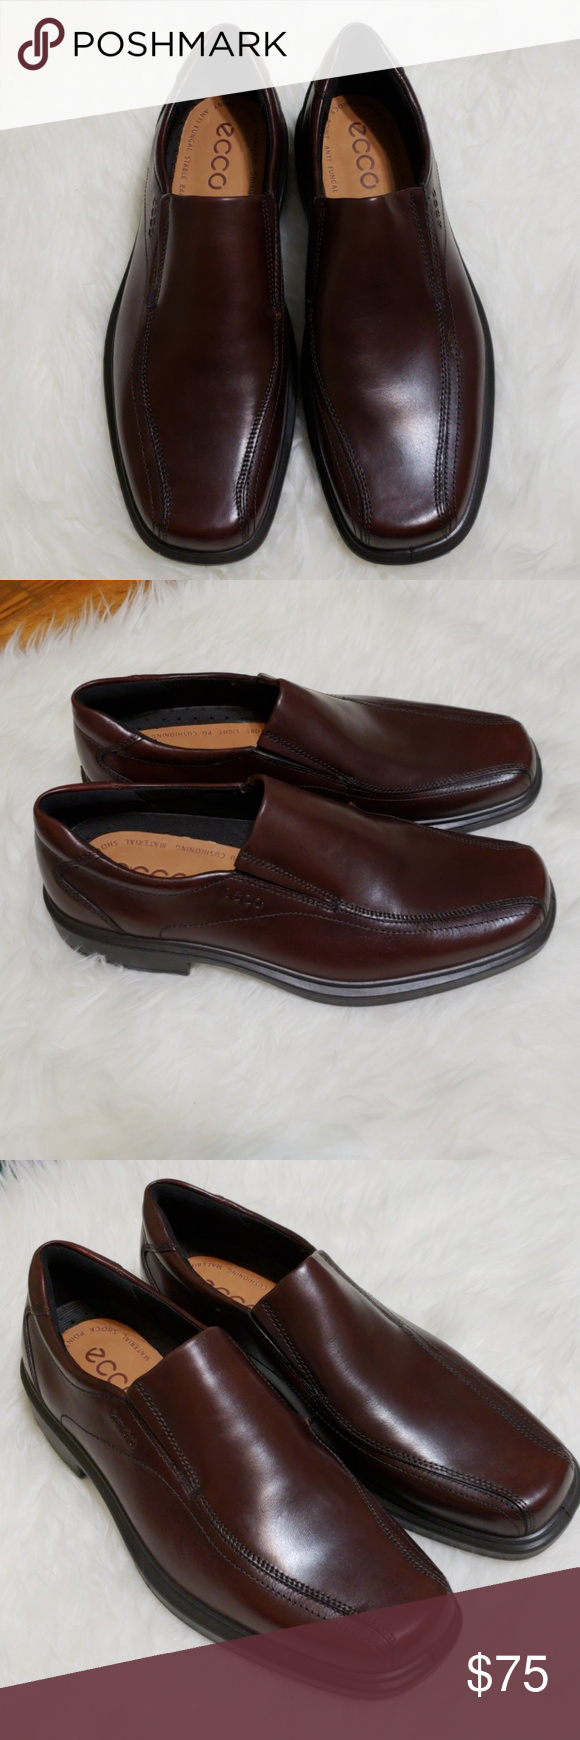 109b0766543 ECCO Men s Leather Shoes Slip On Rust